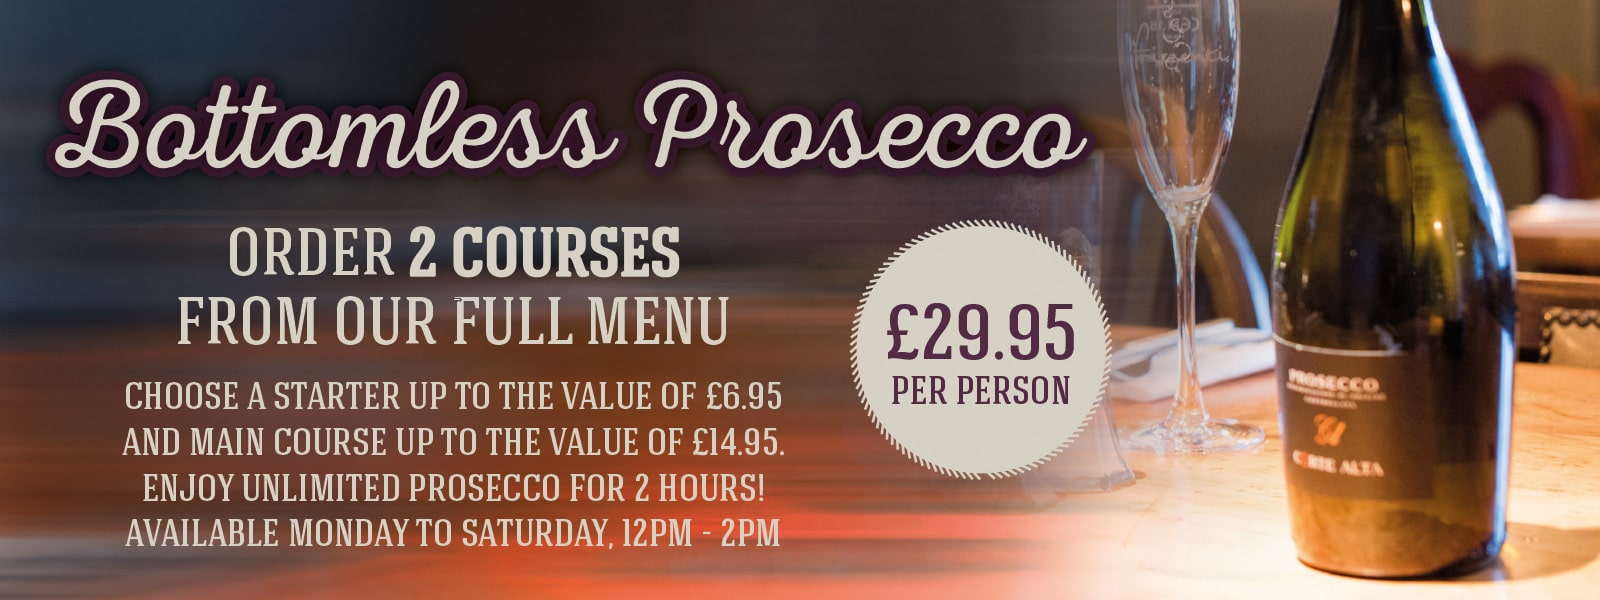 Bottomless Prosecco. Order 2 courses from our full menu, Choose a starter up to the value of £6.95 and main course up to the value of £14.95.  enjoy unlimited prosecco for 2 hours! available monday to saturday, 12pm – 2pm, £29.95 per person